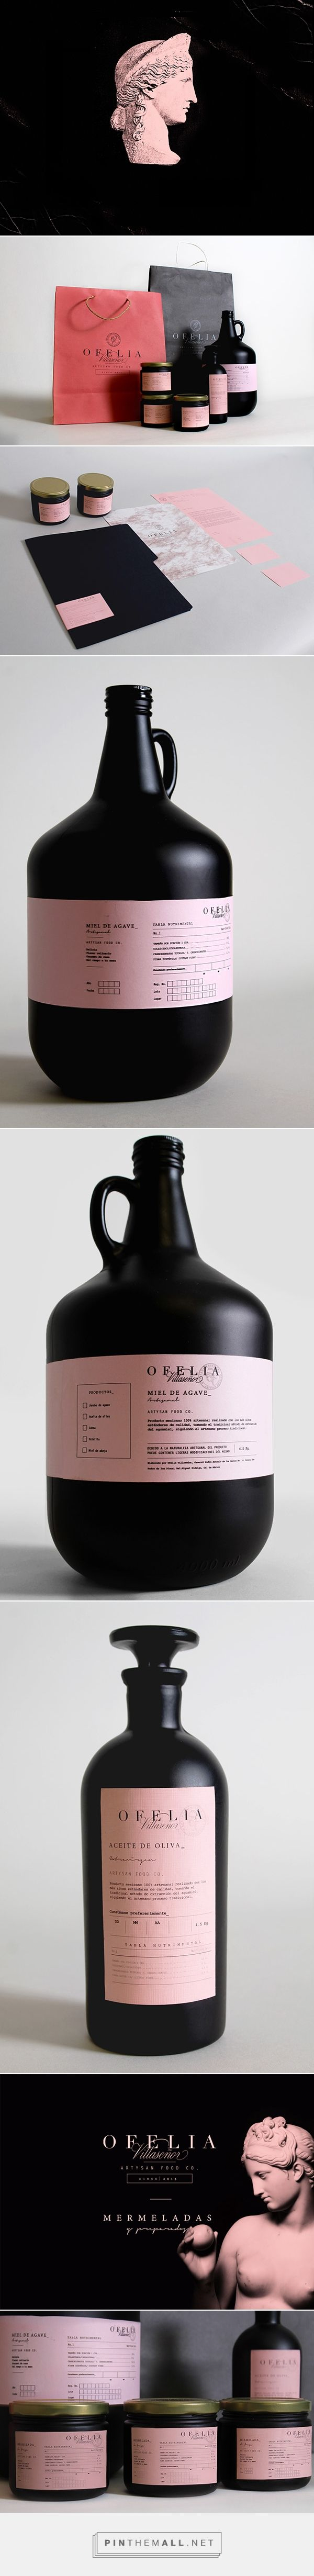 Ofelia Villaseñor on Behance by Daniel Barbra Guadalajara, Mexico curated by Packaging Diva PD. Branding & packaging design for a company that sells artisan food in México.